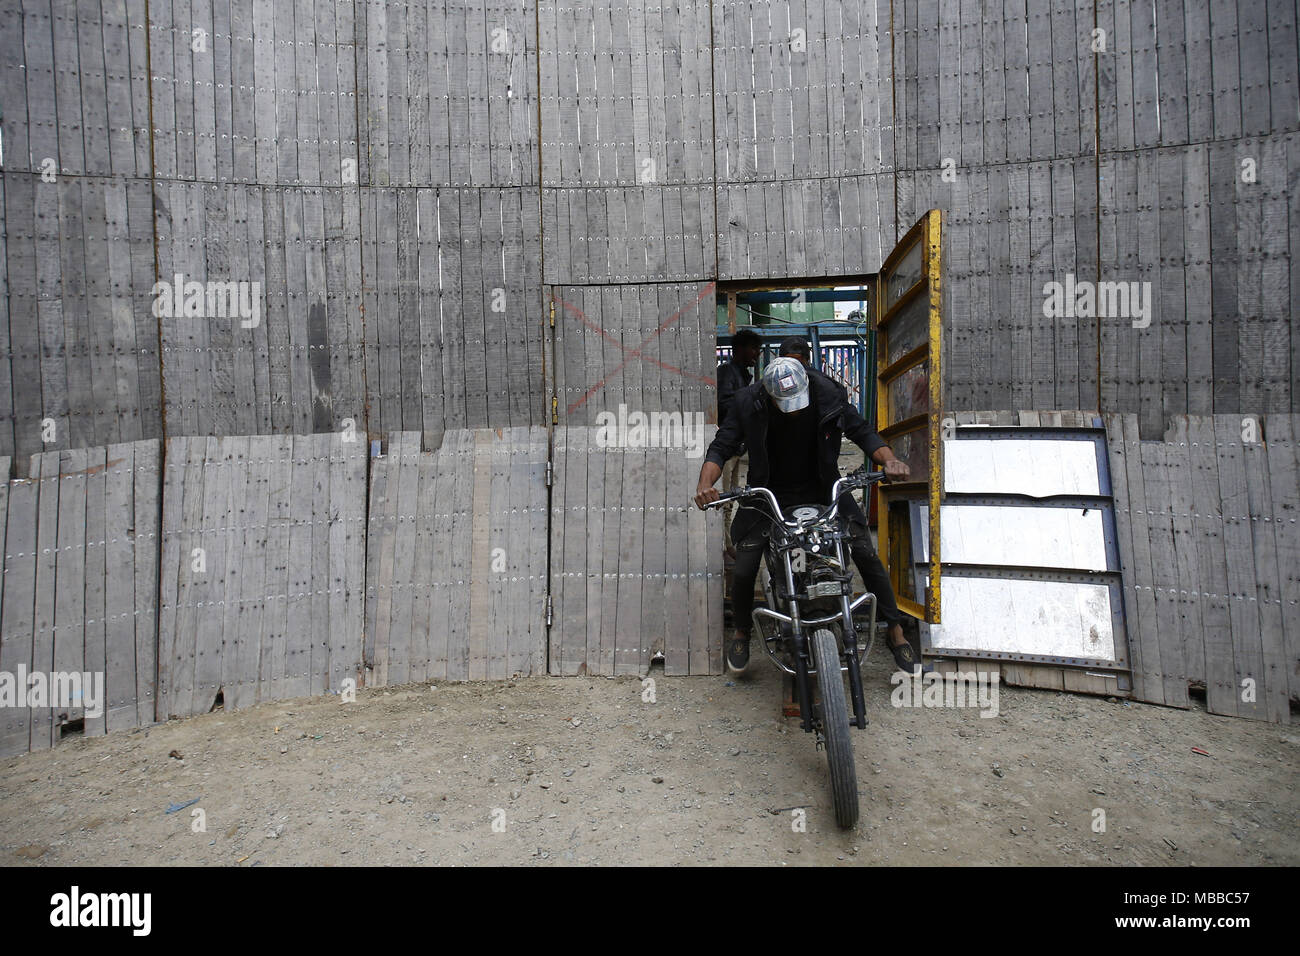 Bhaktapur, Nepal. 10th Apr, 2018. A stuntman enters to display his skills during the 'Well of Death' spectacle at a fair in Bhaktapur, Nepal on Tuesday, April 10, 2018. Credit: Skanda Gautam/ZUMA Wire/Alamy Live News - Stock Image